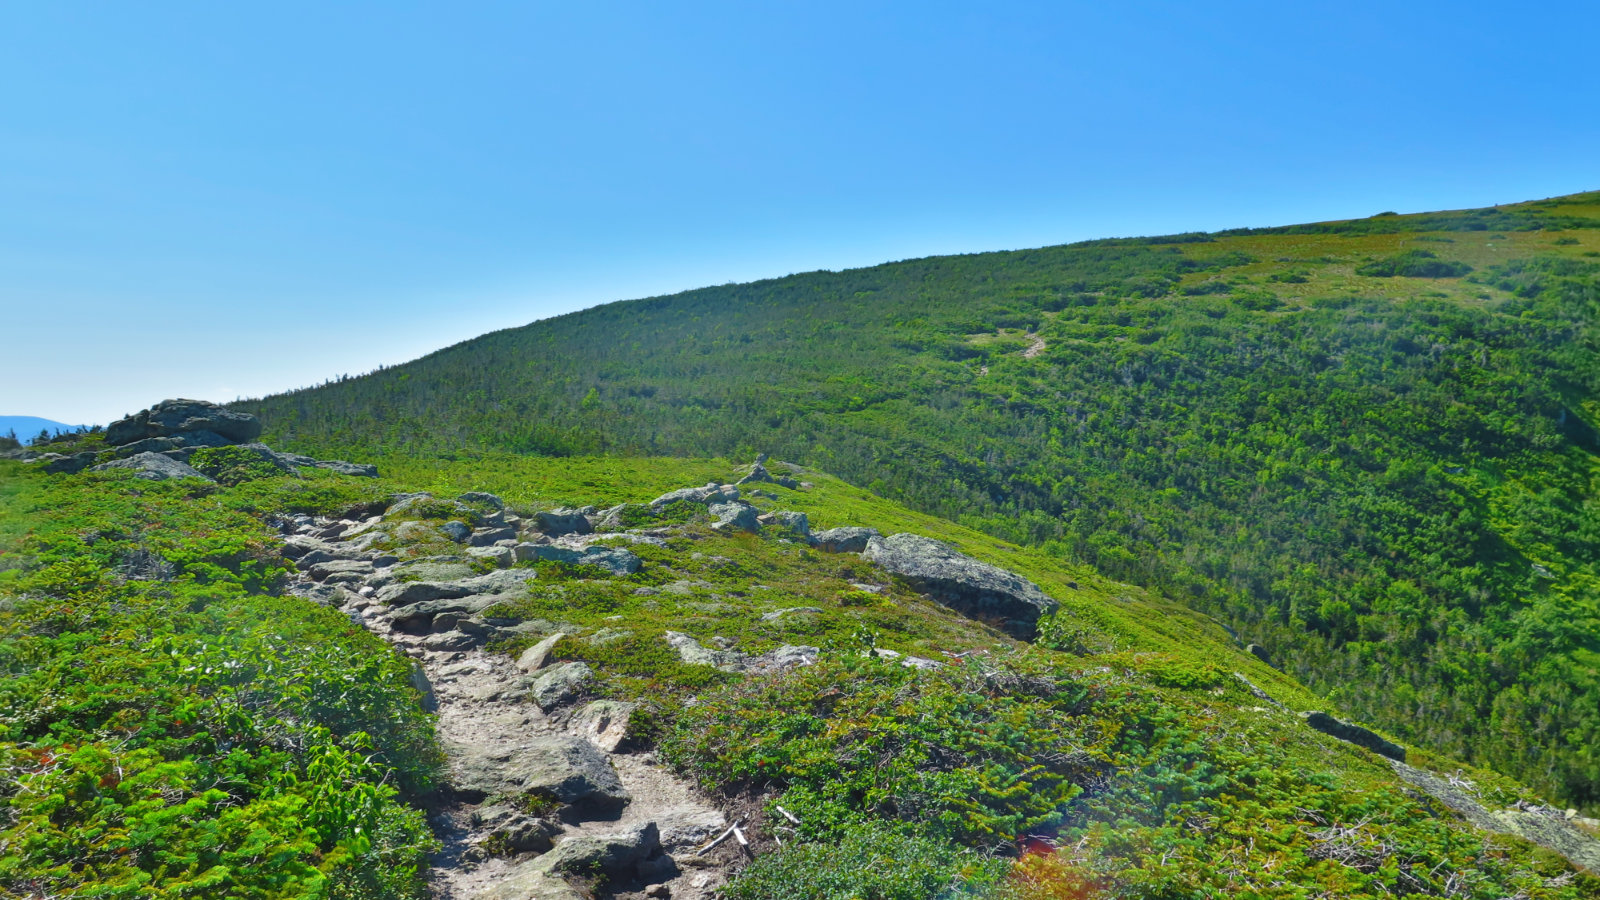 Glen_Boulder_Trail_Isolation_20190805